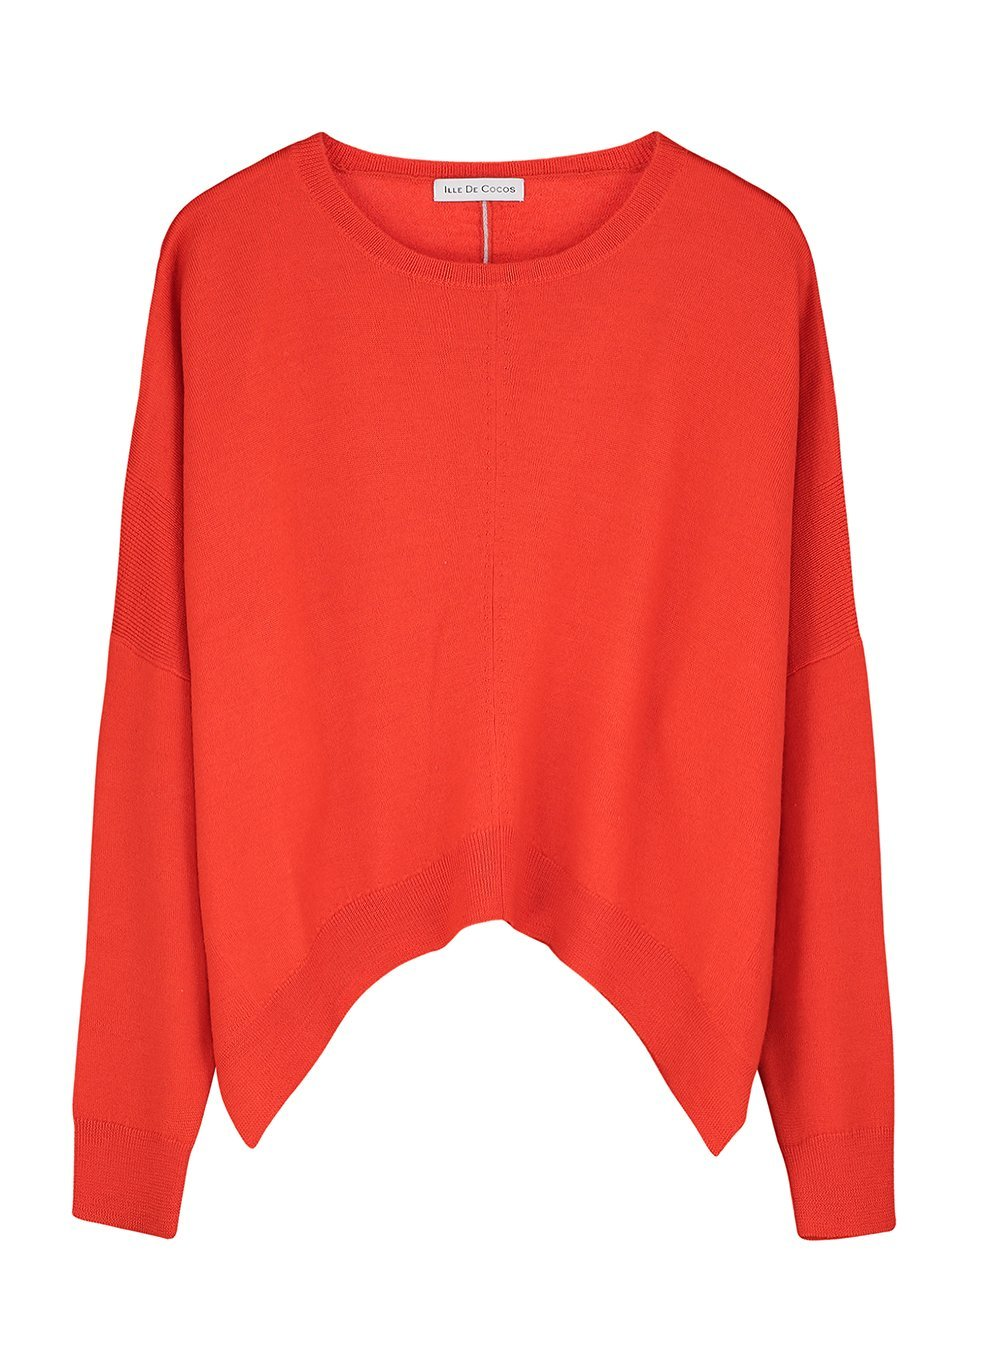 ILLE DE COCOS MERINO CROPPED SWEATER - RED- ROSE